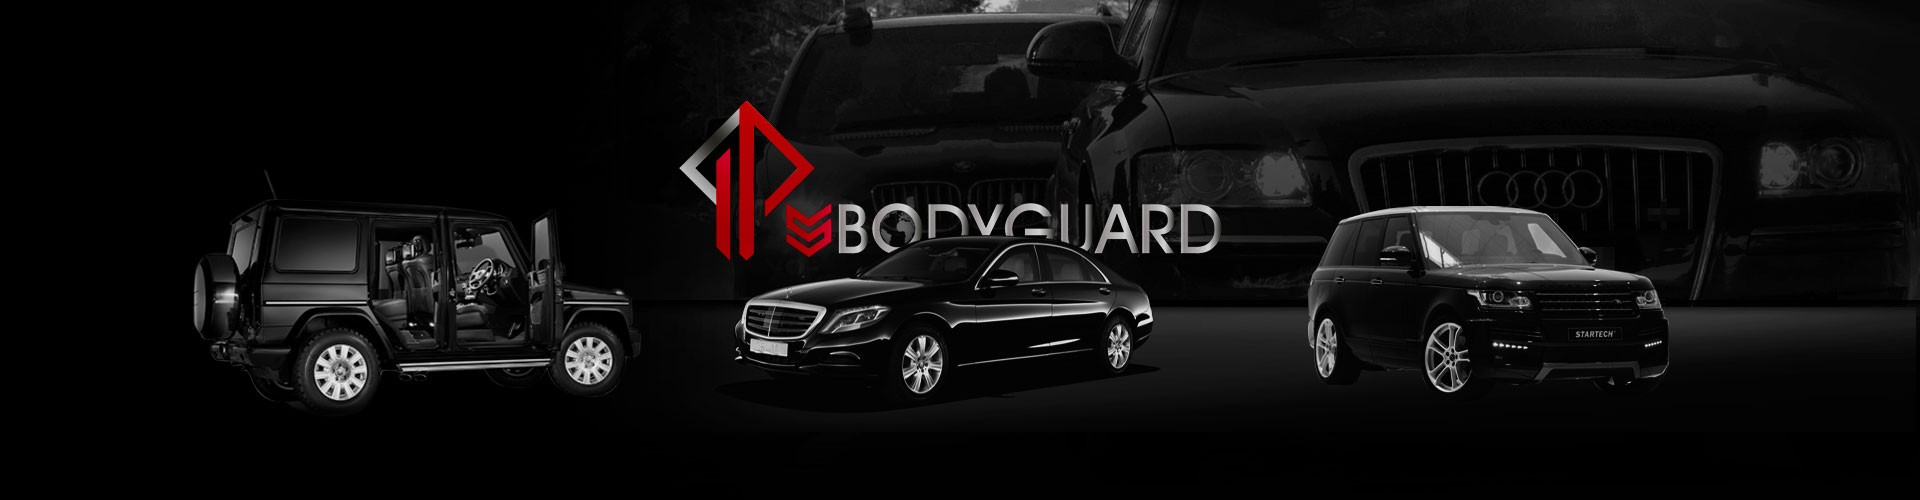 security driver ips bodyguard